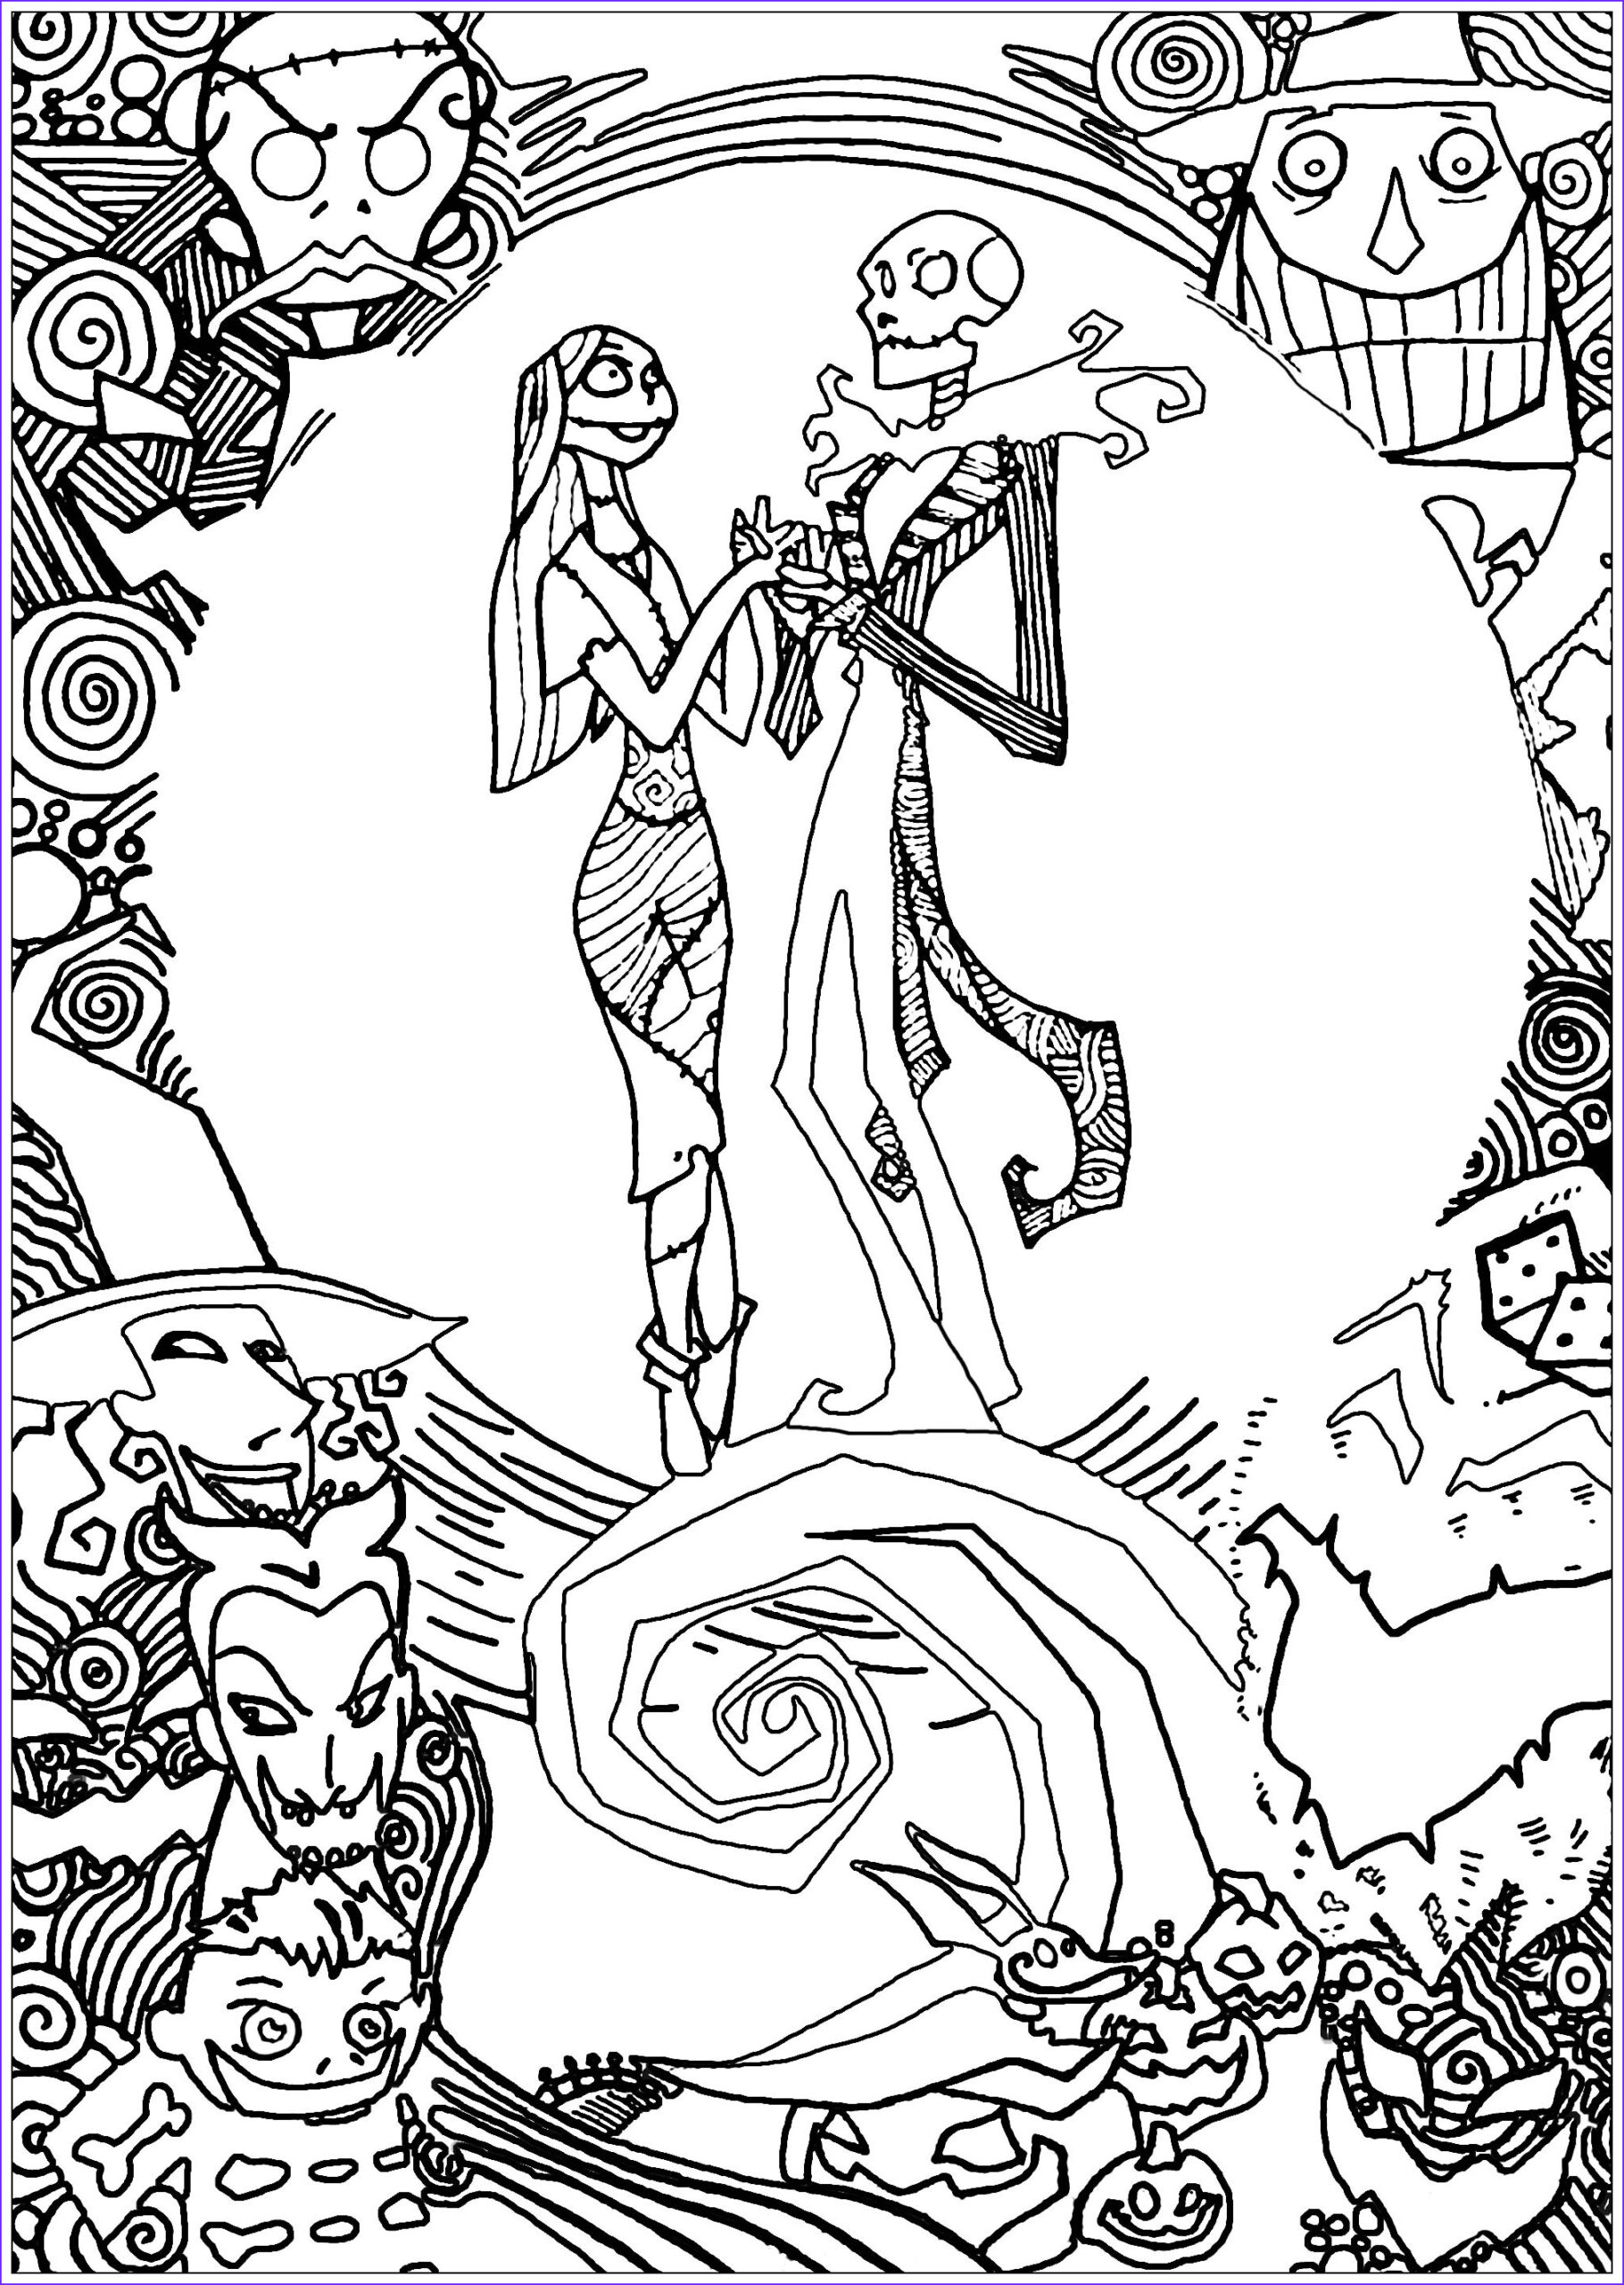 Nightmare before Christmas Coloring Pages Unique Images Sally Nightmare before Christmas Coloring Pages Printable